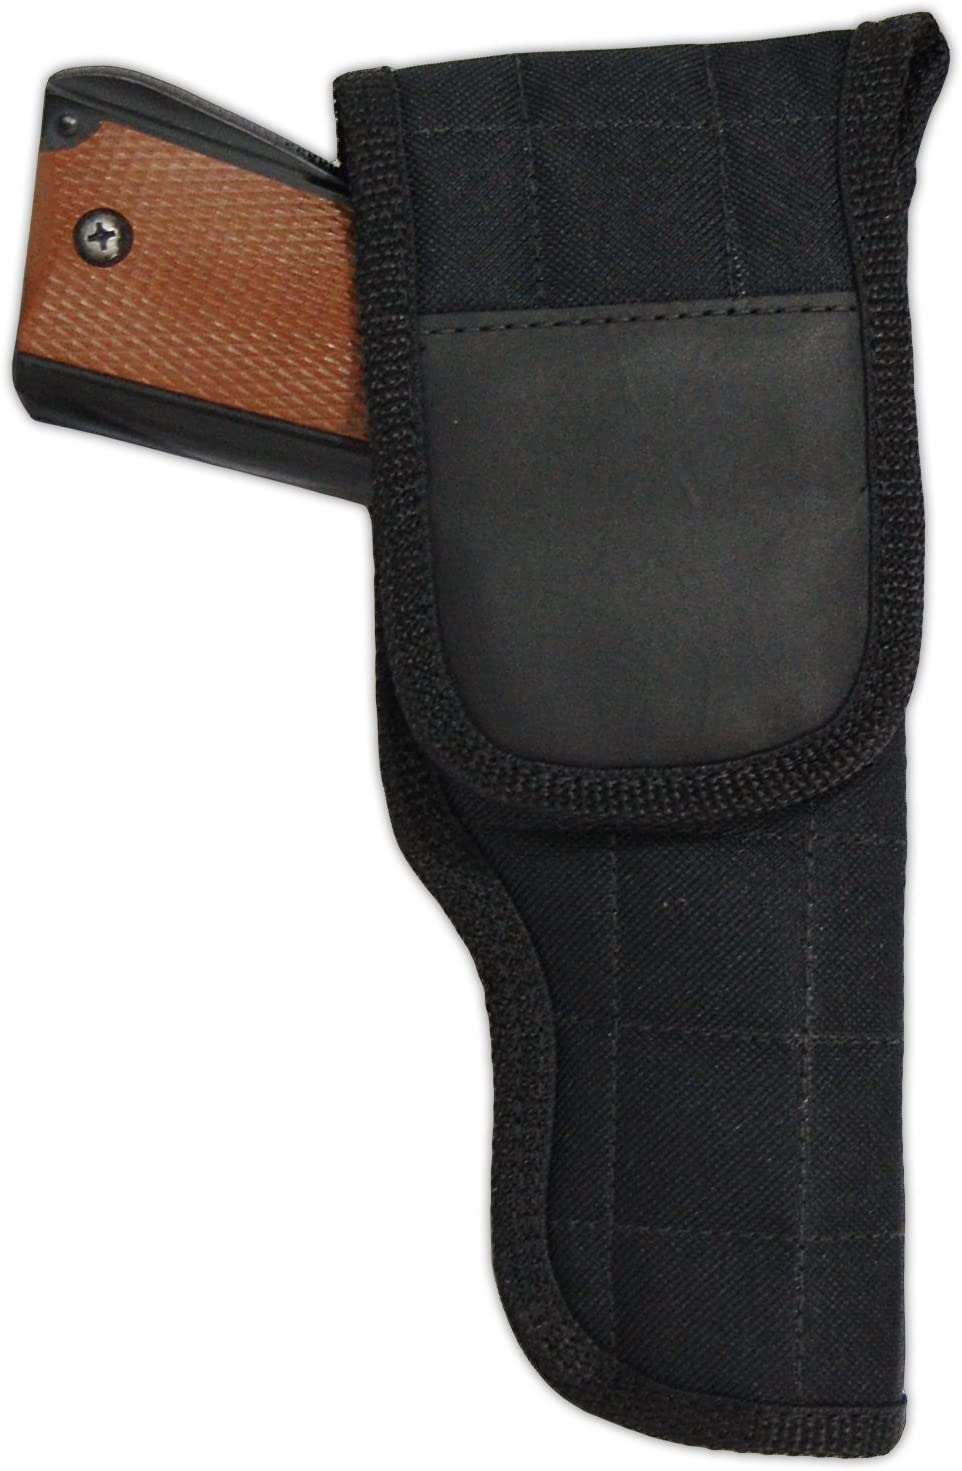 Barsony Phoenix Mall New Flap Holster for Full 40 Semi-Autos 9mm Size outlet 45